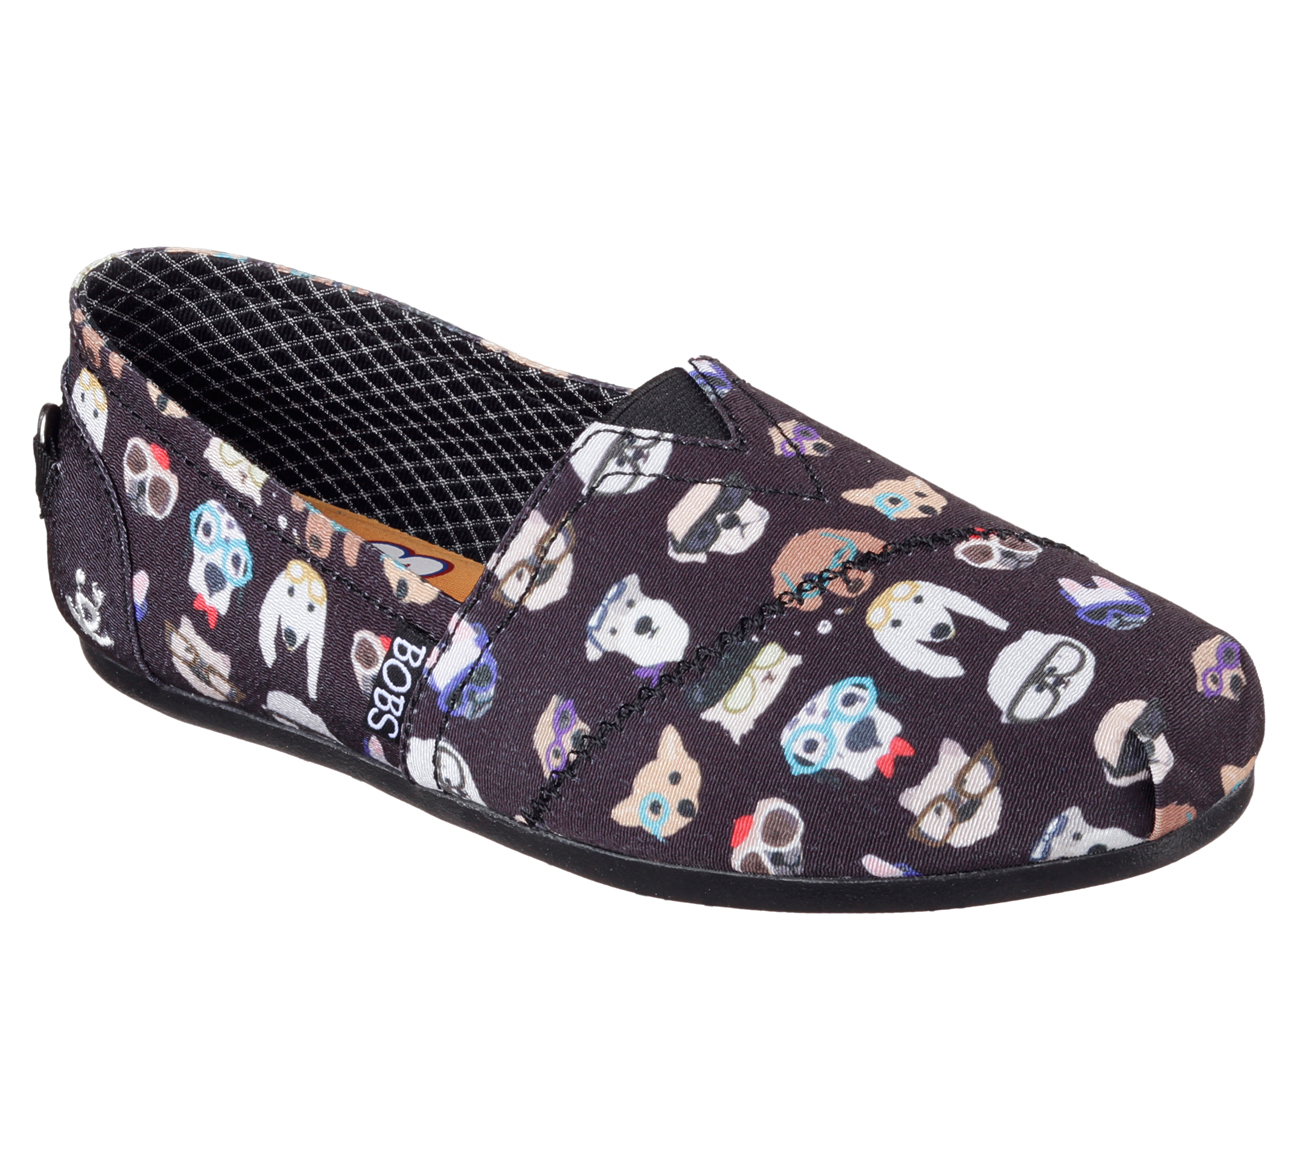 Skechers BOBS for Dogs